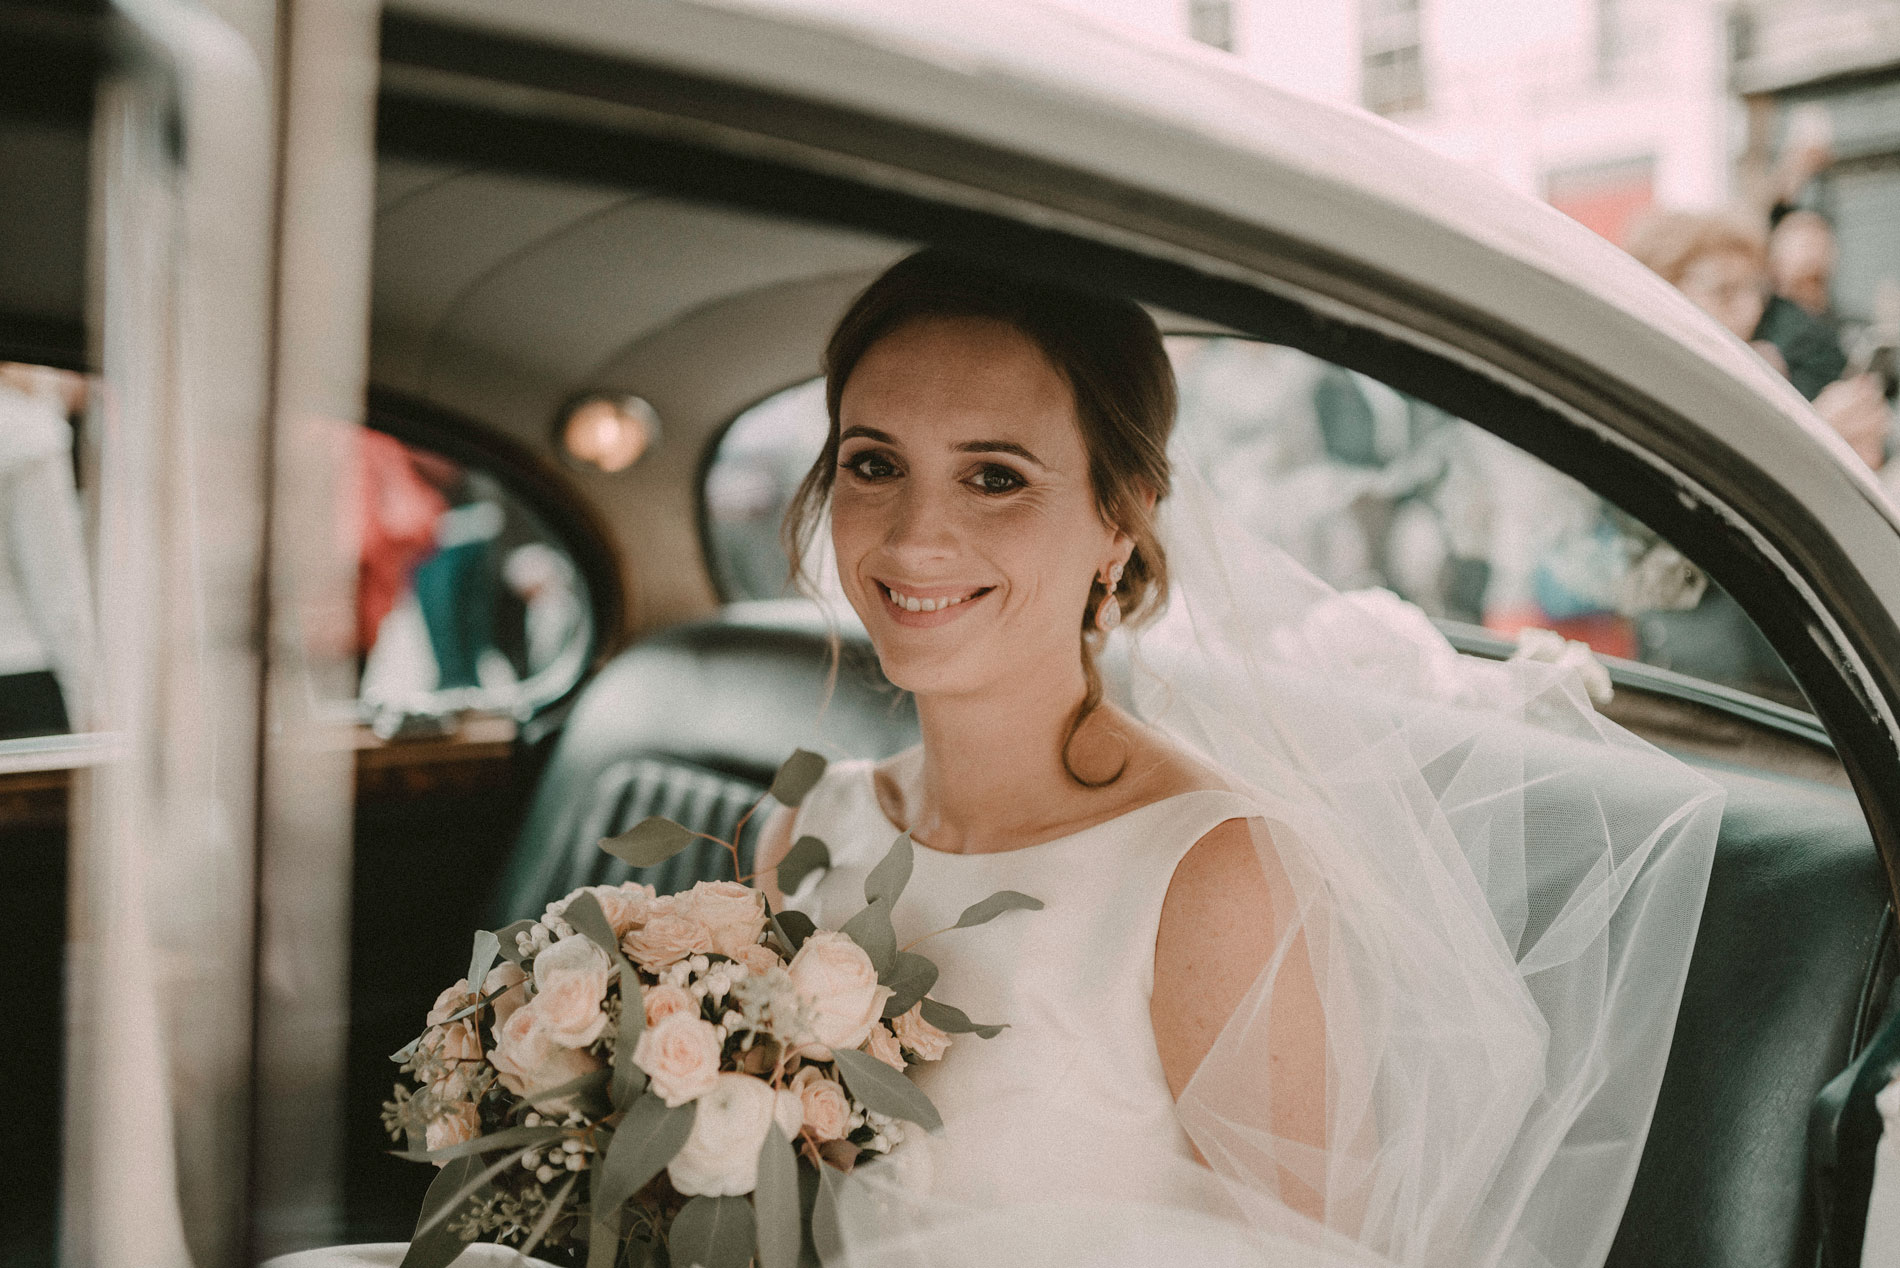 the bride arriving in the car